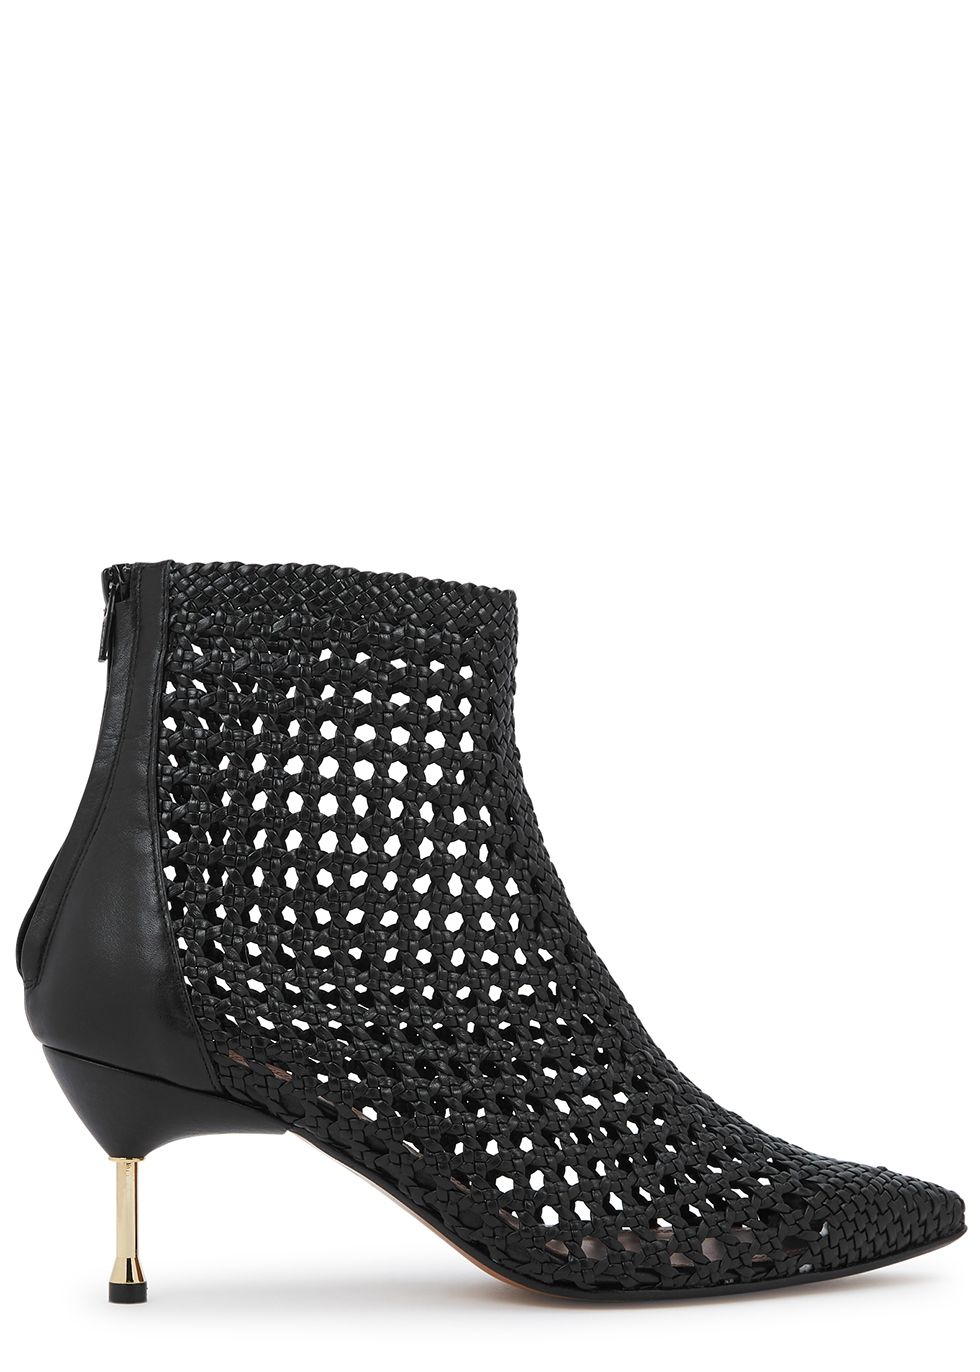 Mahon 65 black leather ankle boots